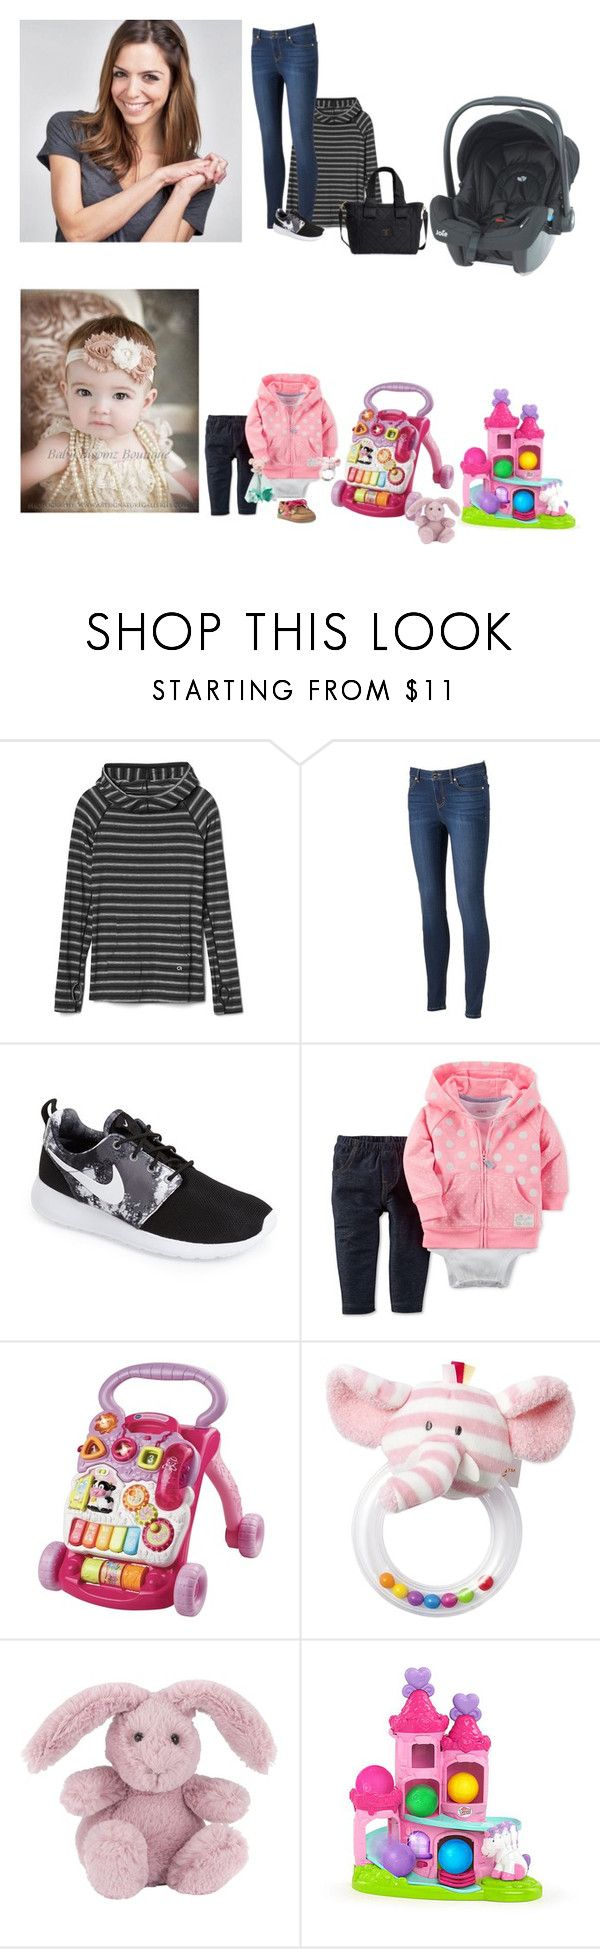 """""""02.26.17Tournament,Play date & Out to dinner"""" by the-hope-family ❤ liked on Polyvore featuring Gap, Jennifer Lopez, NIKE, Carter's, VTech, Manhattan Toy, Jellycat, Marc Jacobs, Mamas & Papas and Sperry"""